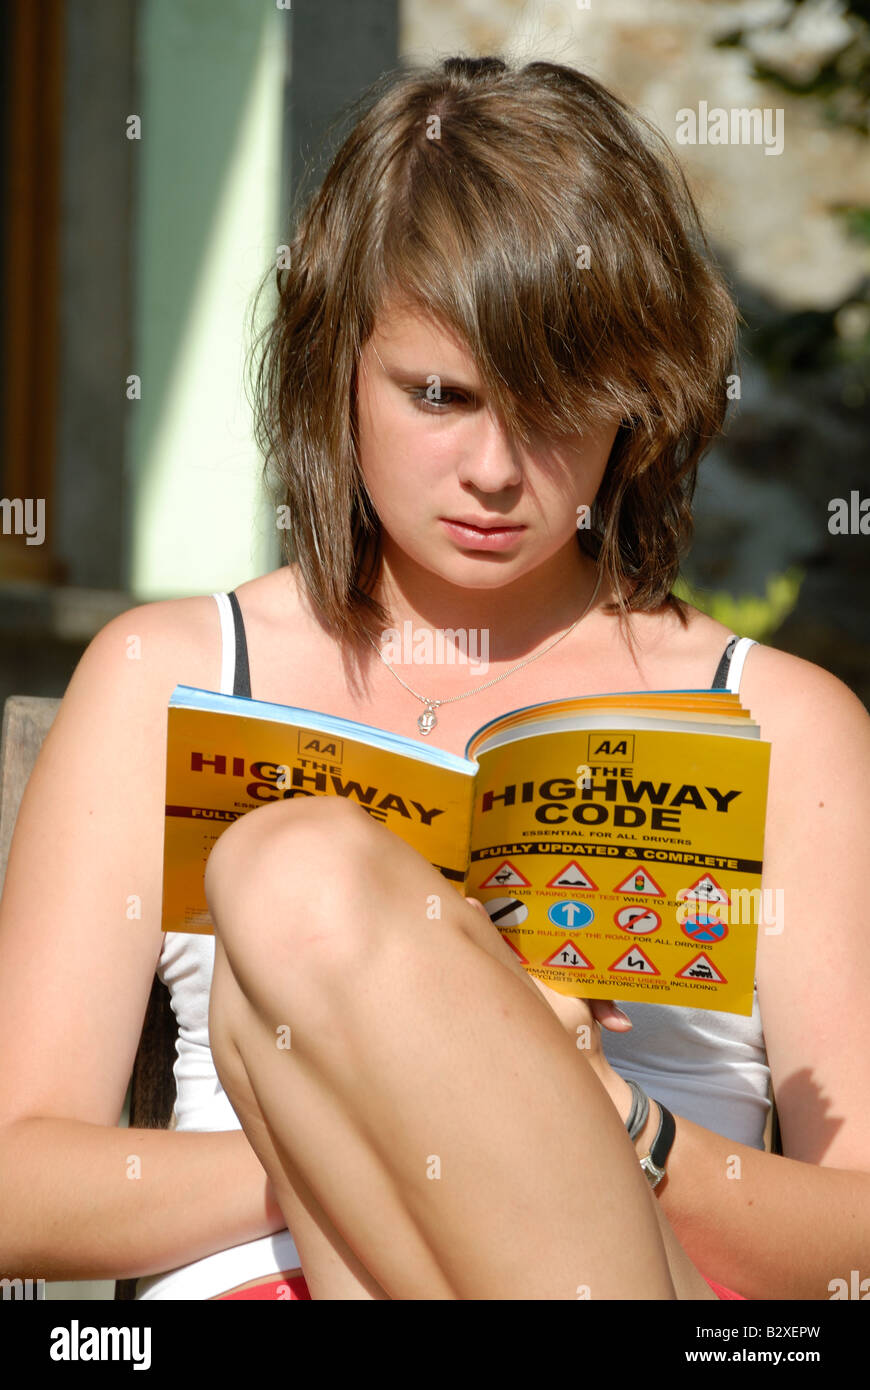 Stock photo of a teenage girl reading the highway code as she prepares for her driving theory test in the UK - Stock Image